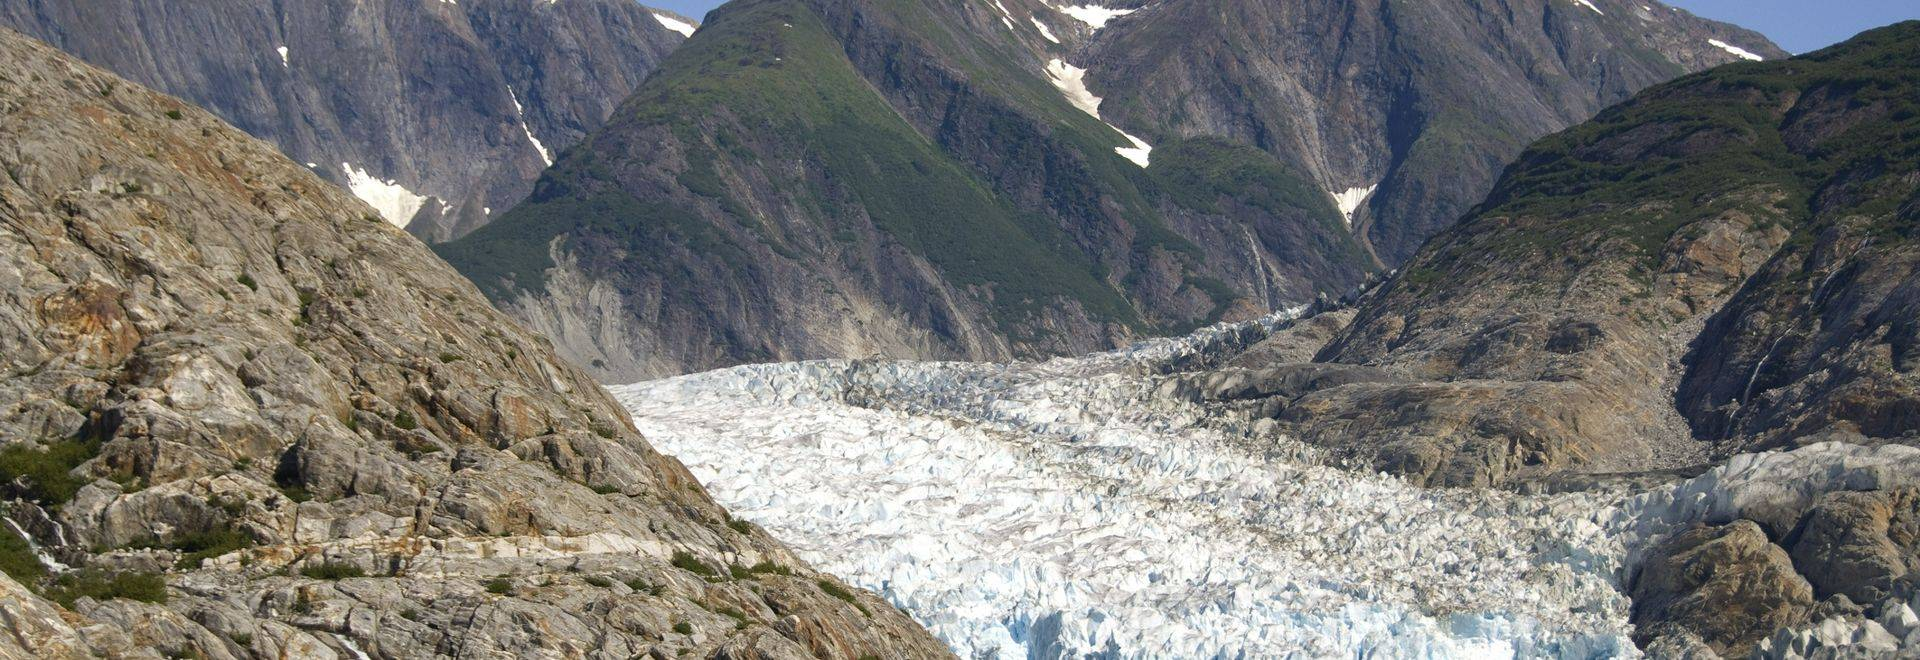 Alaska Small icebergs floating from North Sawyer Glacier in Tracy Arm a 25 mile glacially carved valley